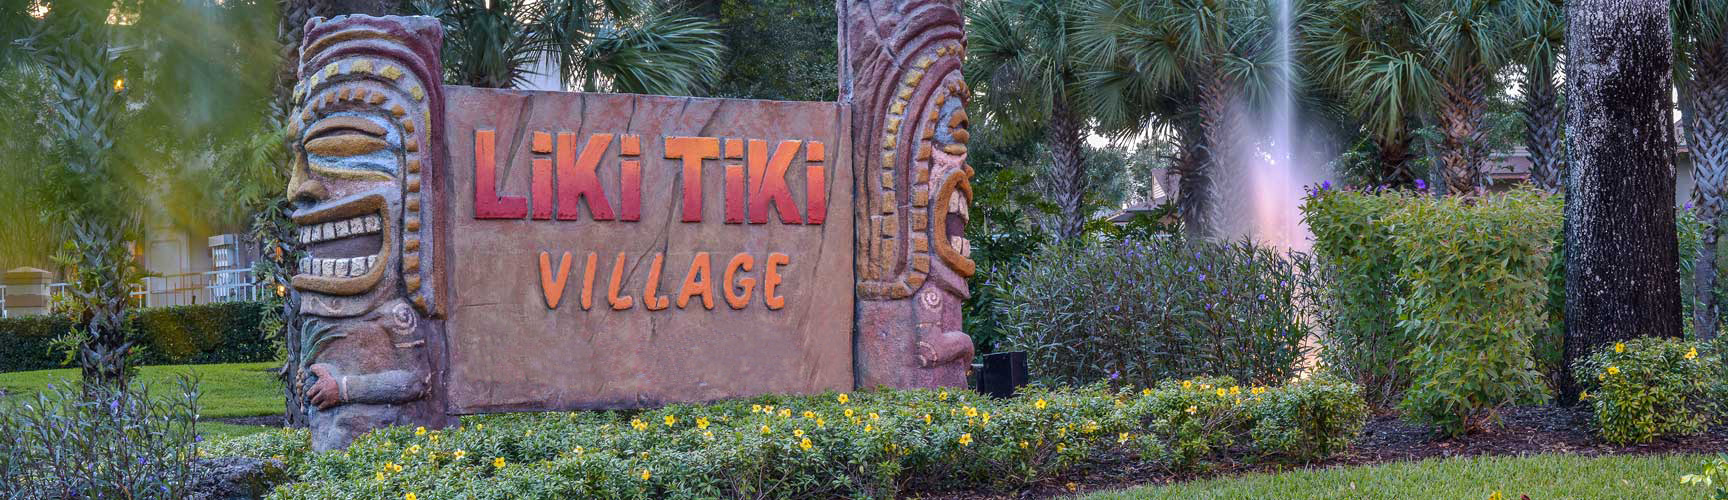 liki tiki village vacation resort orlando florida